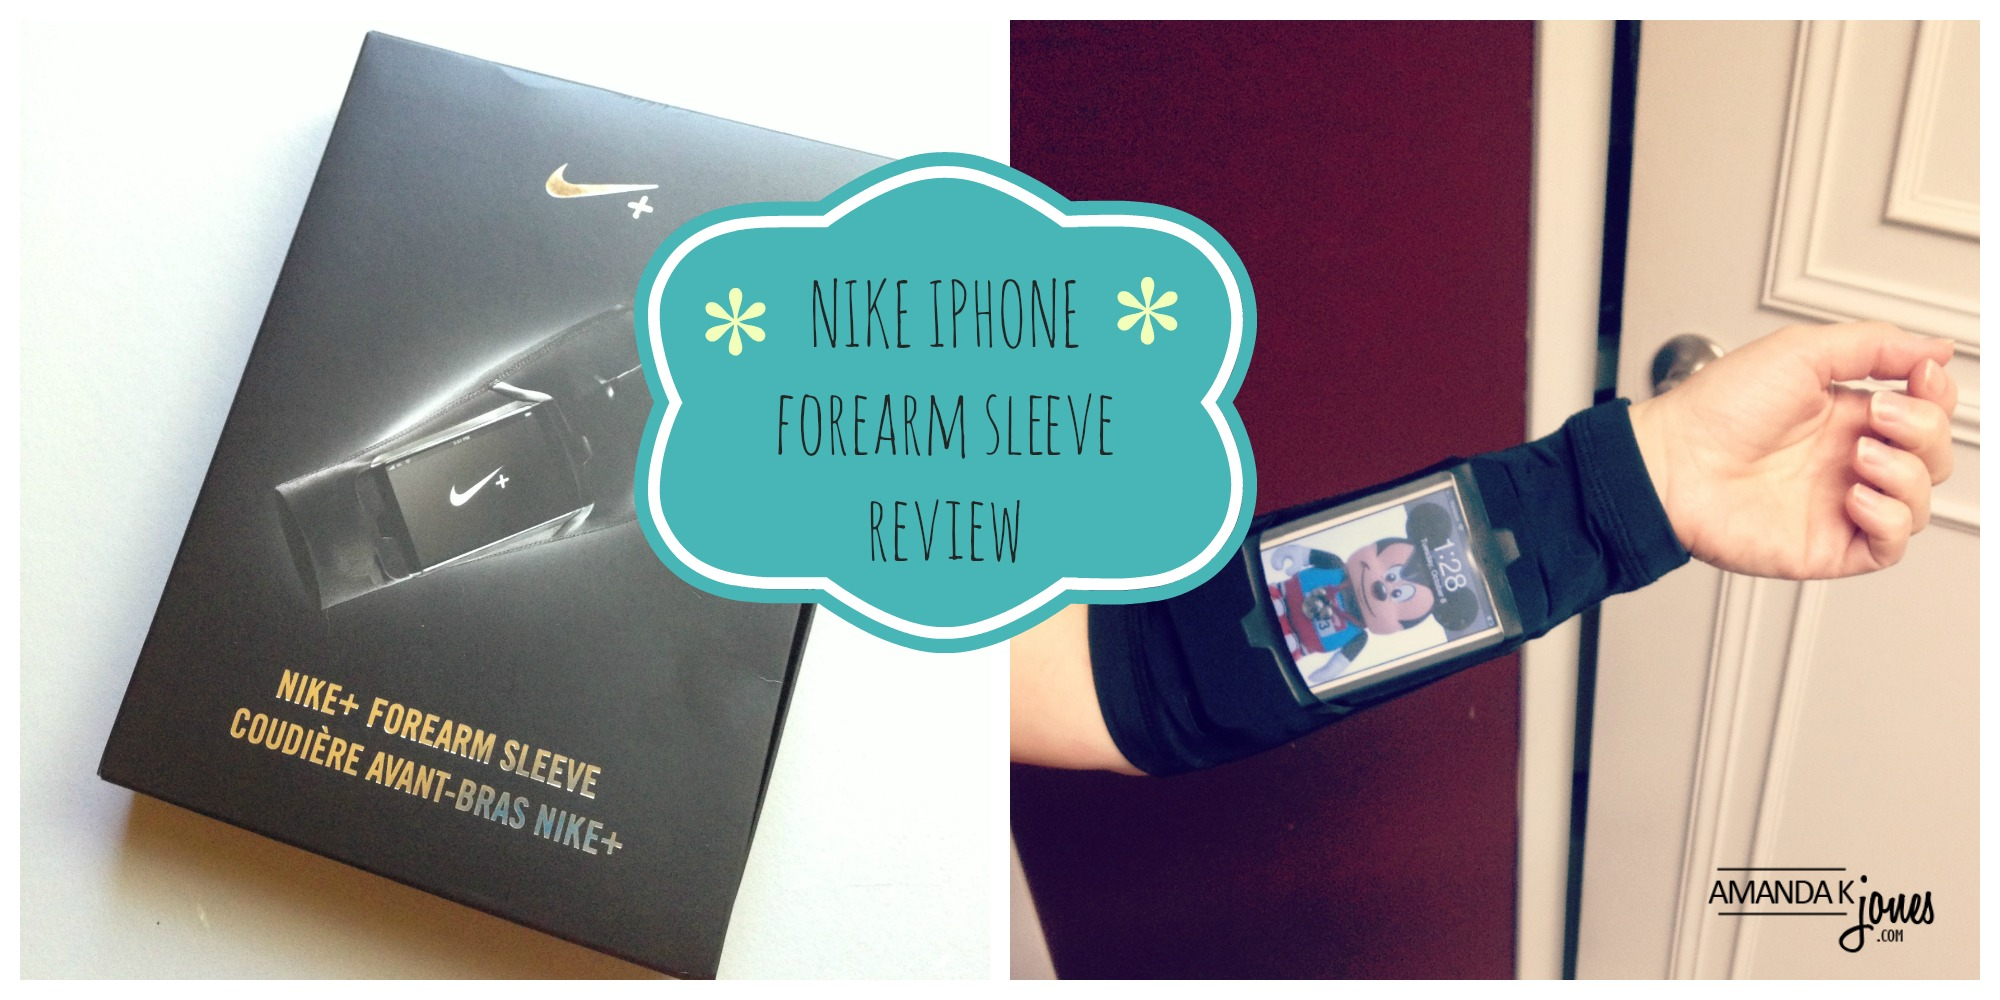 Nike iPhone Forearm Sleeve Review